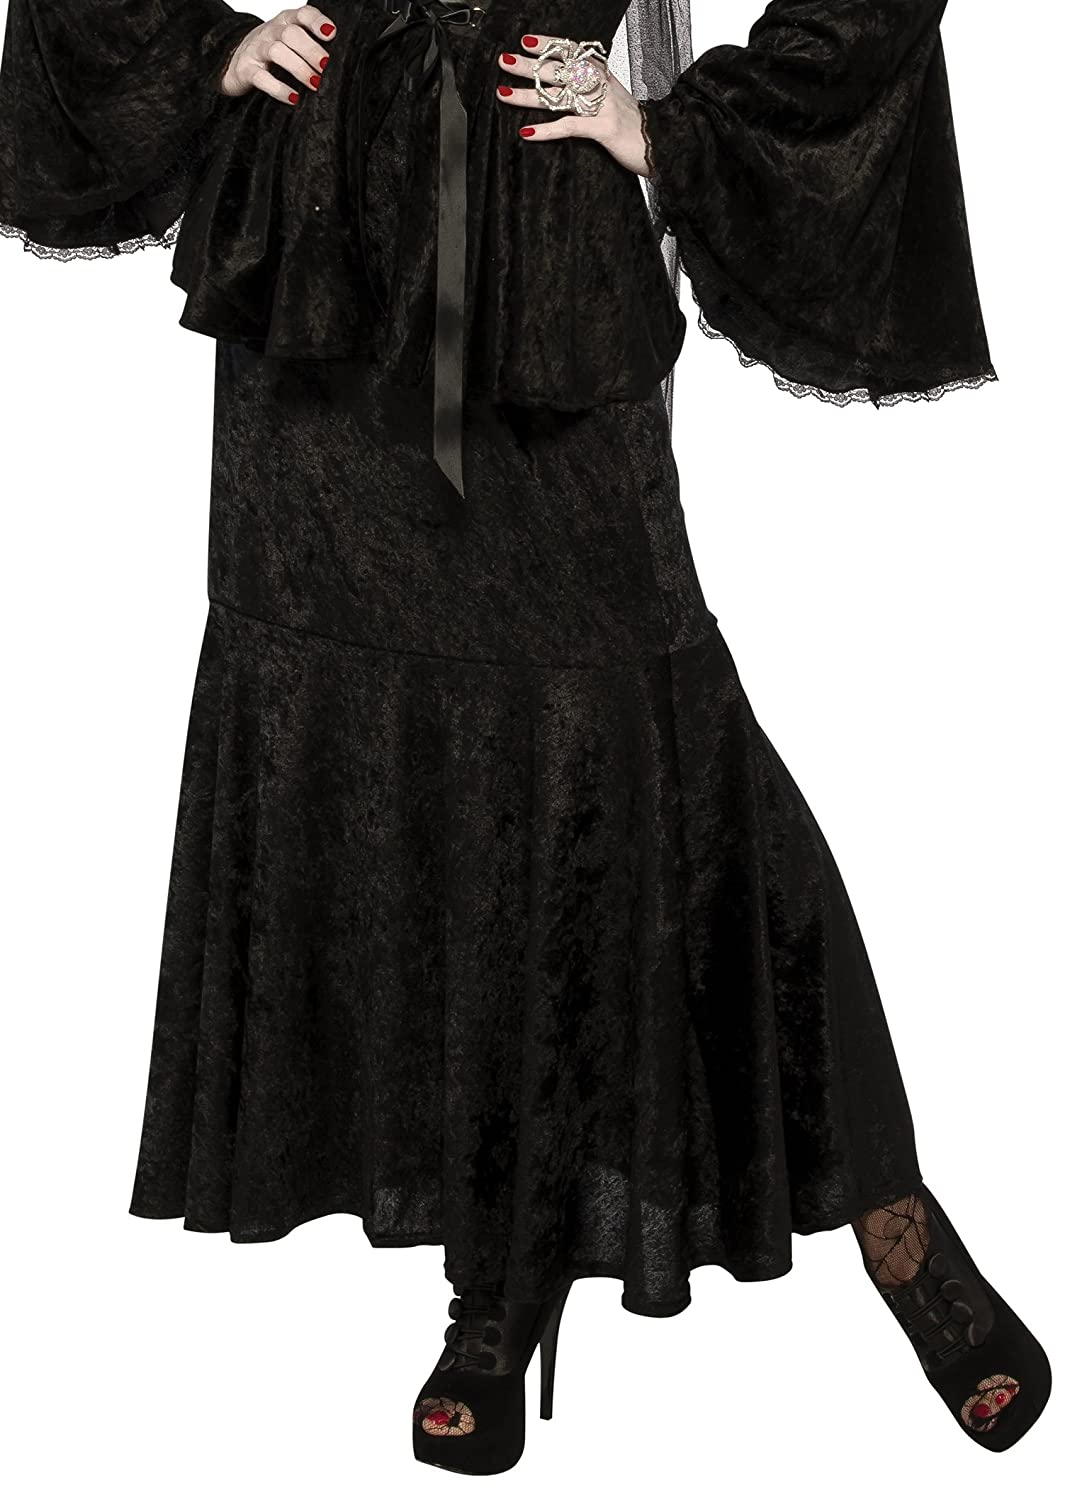 Victorian Clothing, Costumes & 1800s Fashion Rubies Costume CO. Womens Velvet Costume Skirt $5.91 AT vintagedancer.com